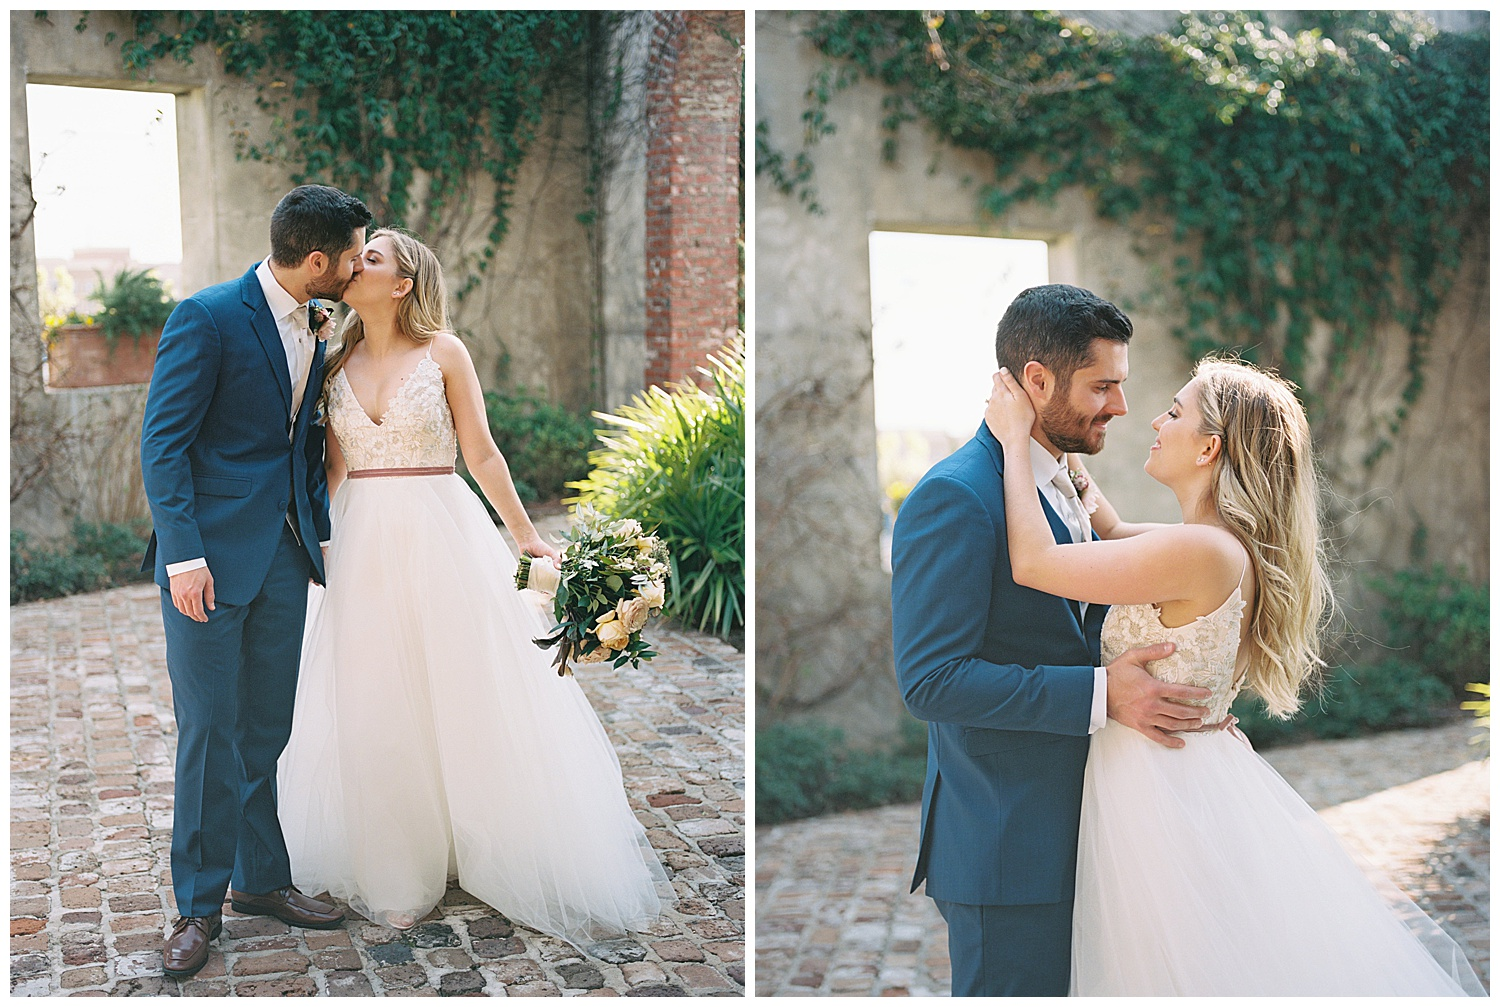 summerour studio wedding